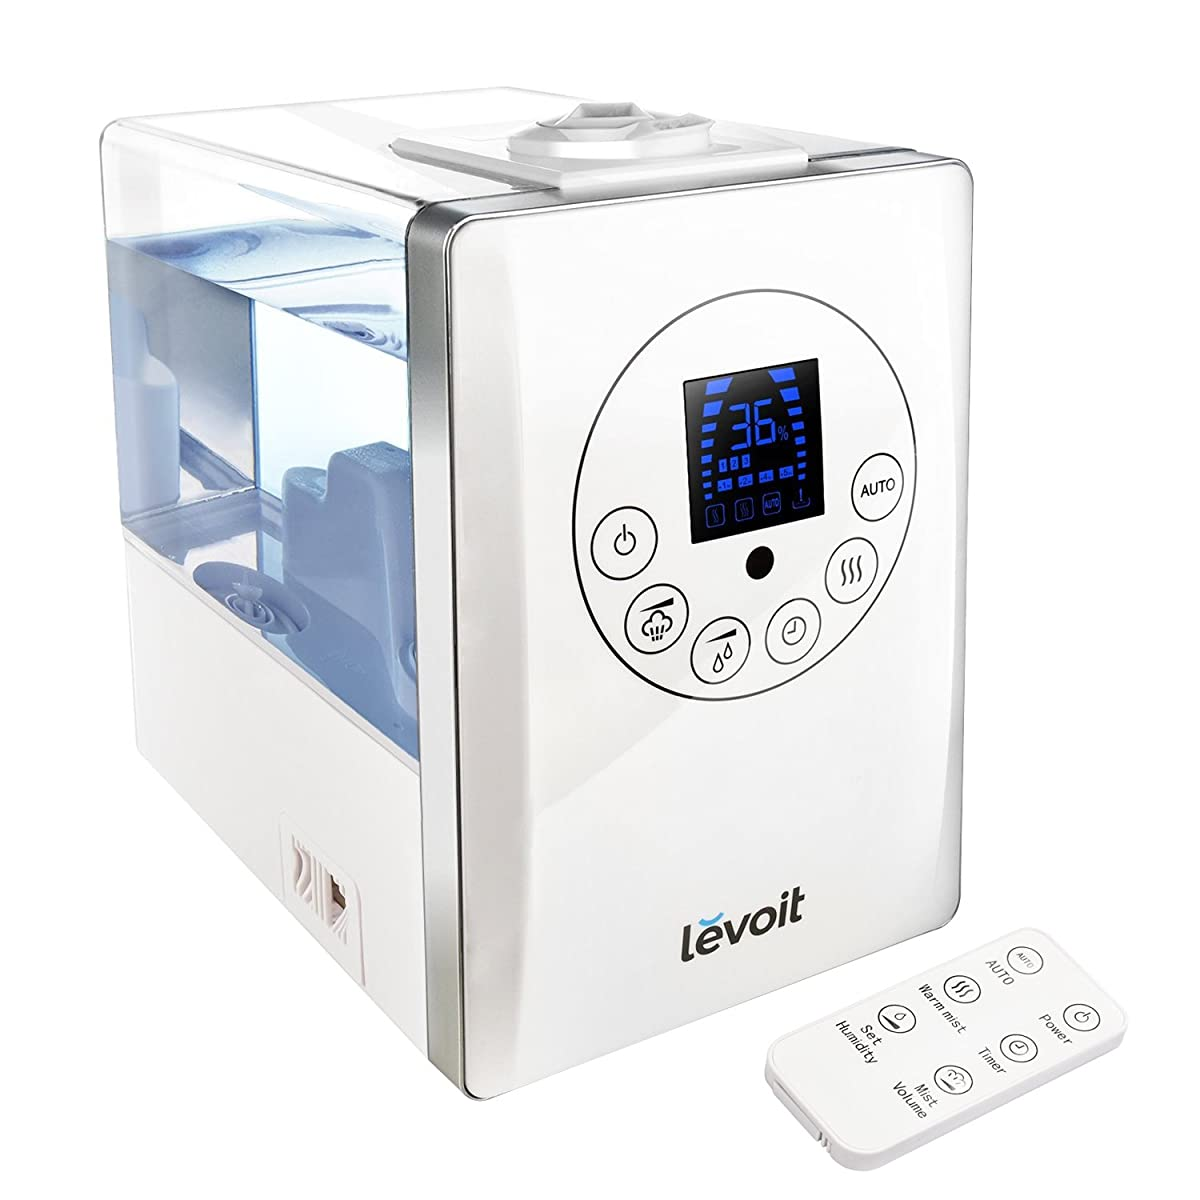 hight resolution of levoit cool amp warm mist humidifier ultrasonic air vaporizer remote control 6l 1 6